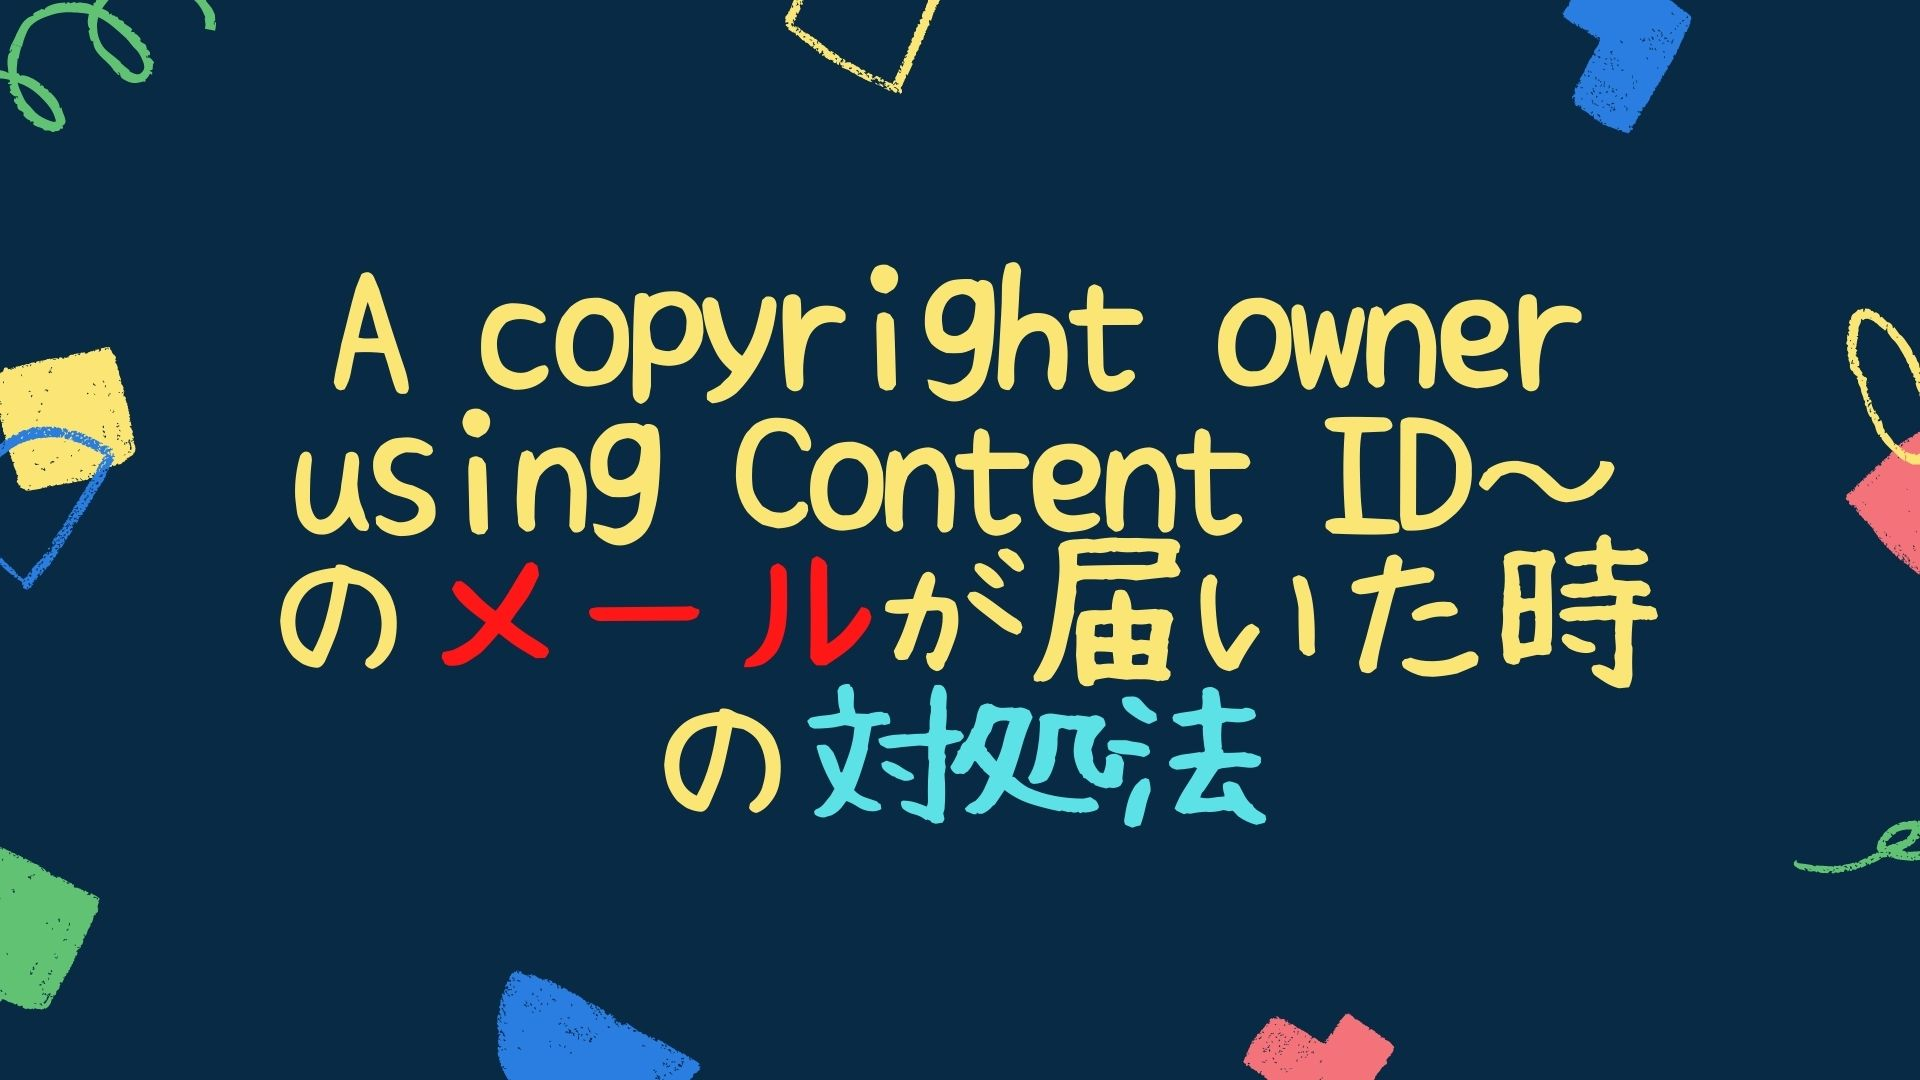 A copyright owner using Content ID~のメールが届いた時の対処法